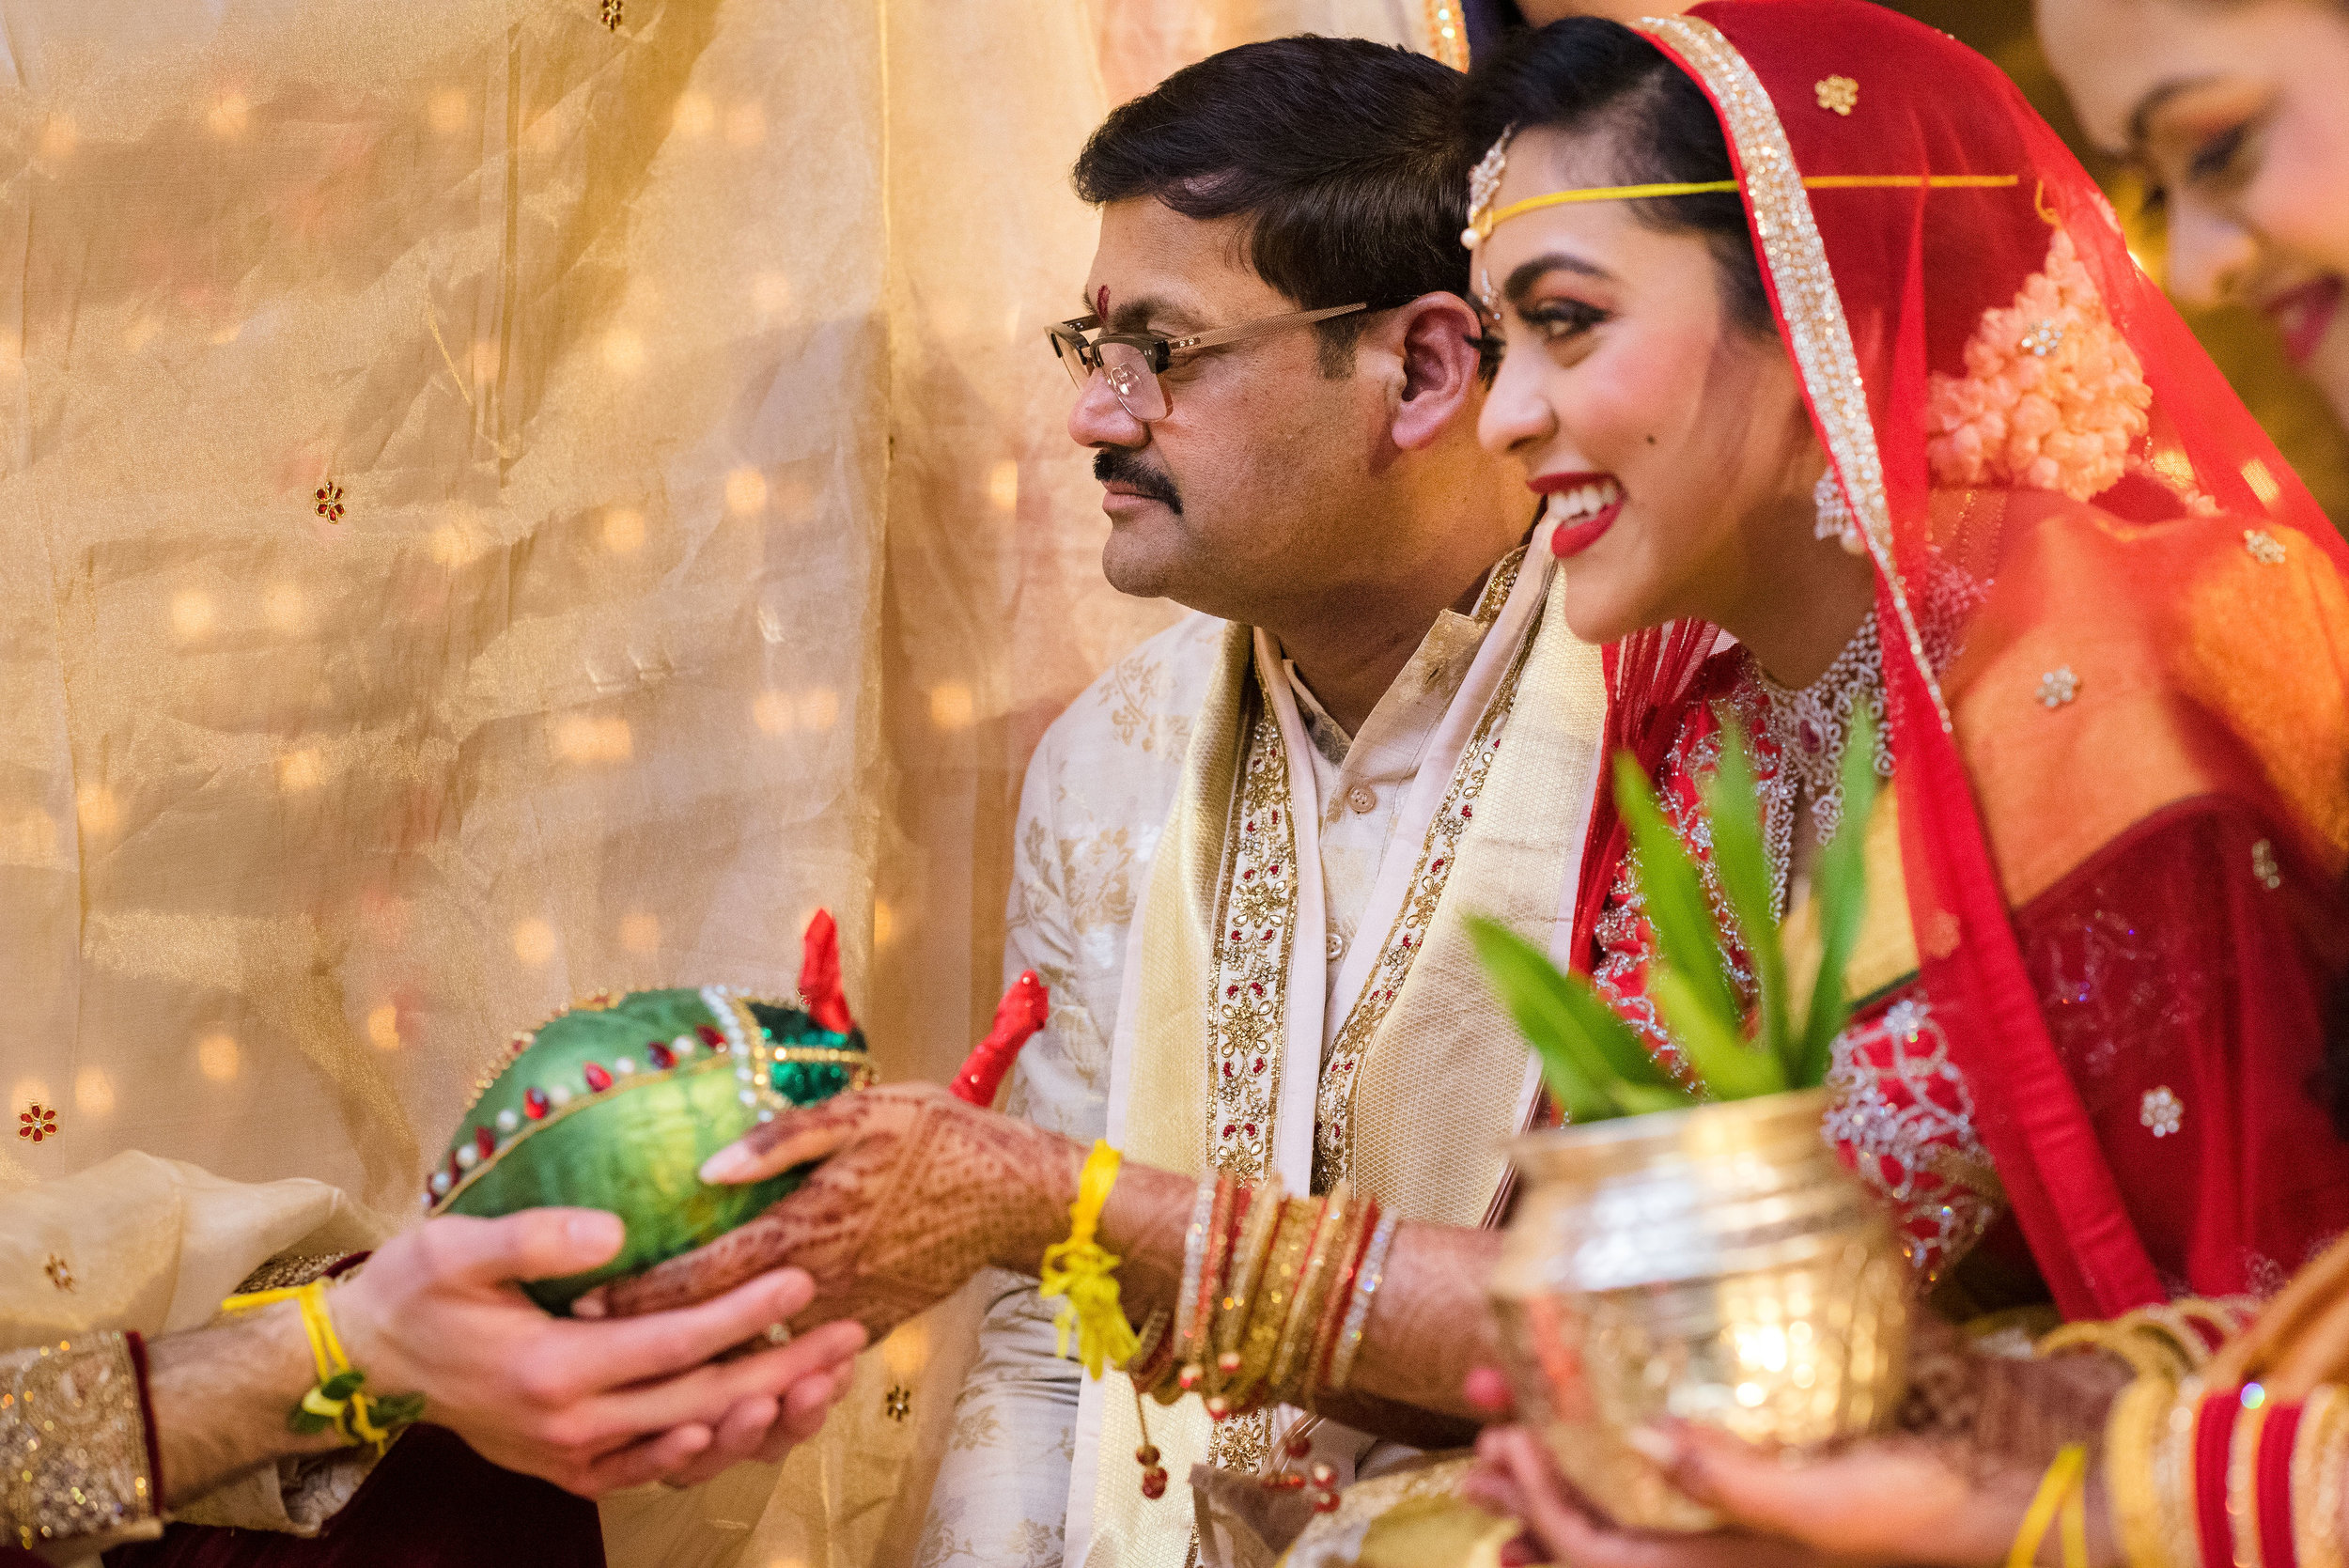 INDIAN WEDDING BRIDE AND FATHER.JPG